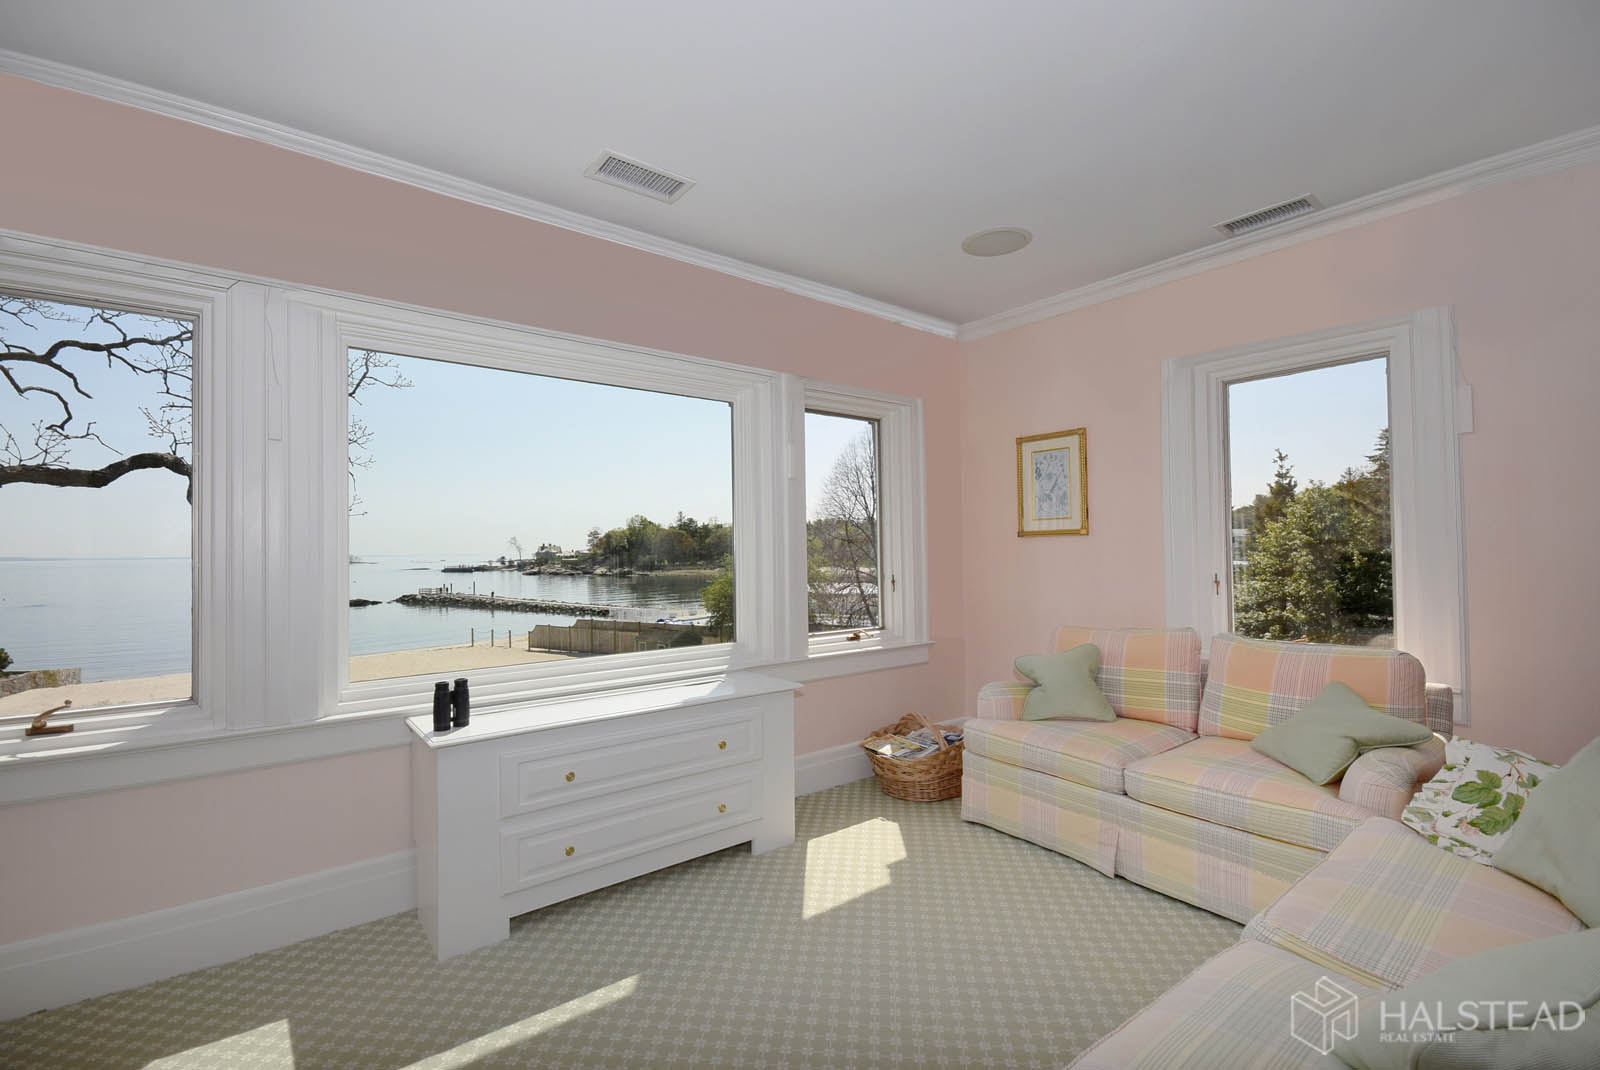 8 Butlers Island Road, Darien, Connecticut, 06820, $7,495,000, Property For Sale, Halstead Real Estate, Photo 33